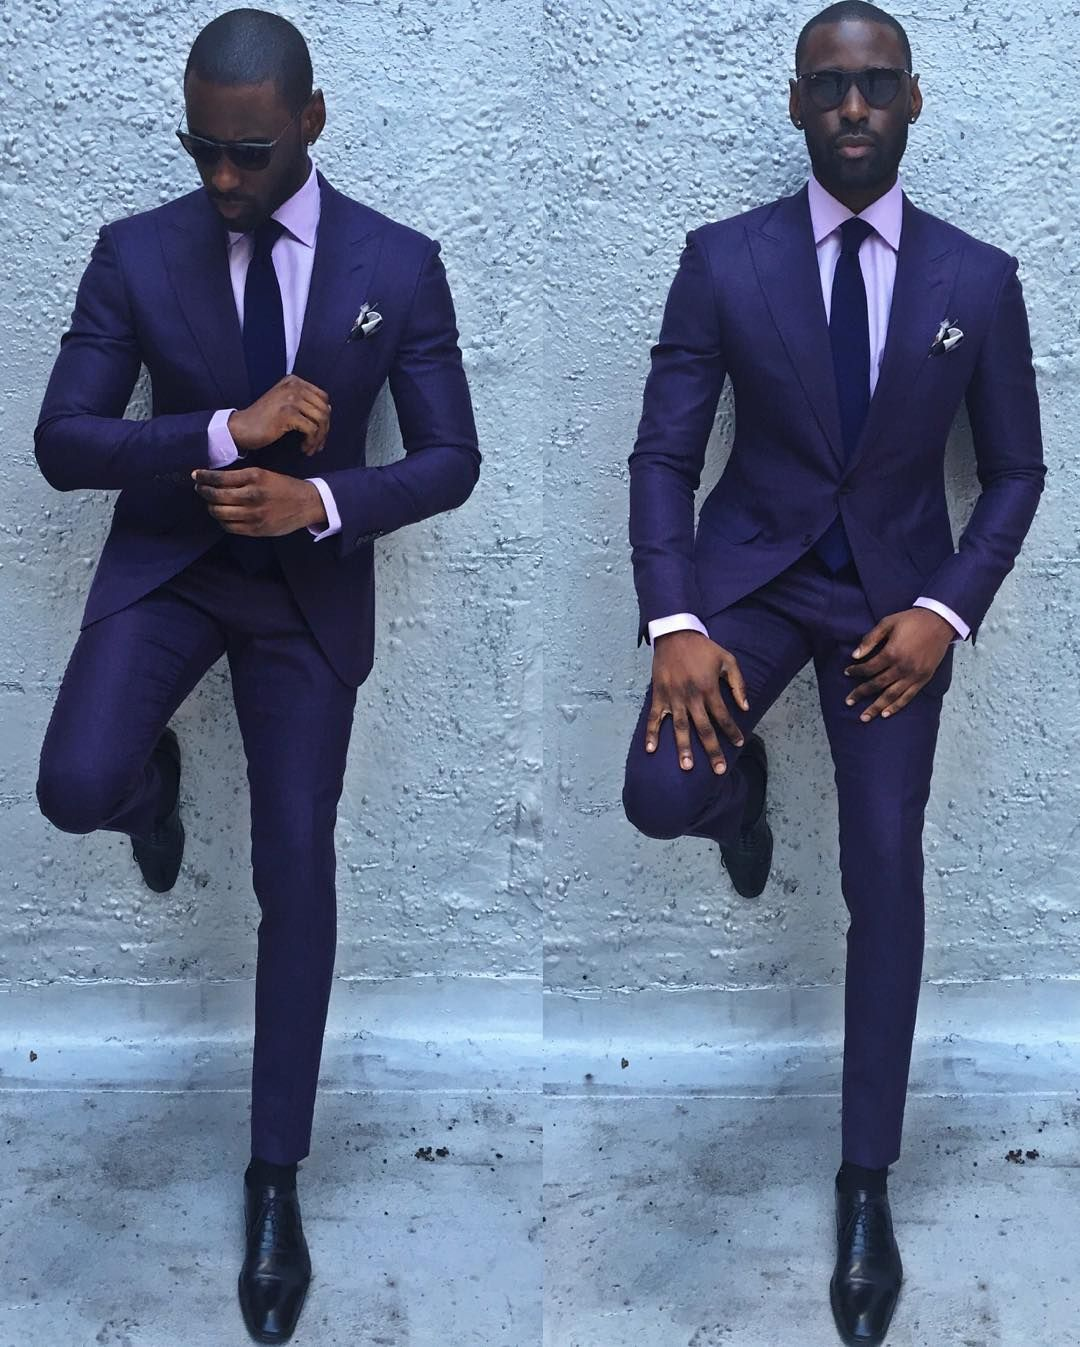 Pin by Rob Lee on SuitGame | Pinterest | Perfect fit, Men\'s suits ...